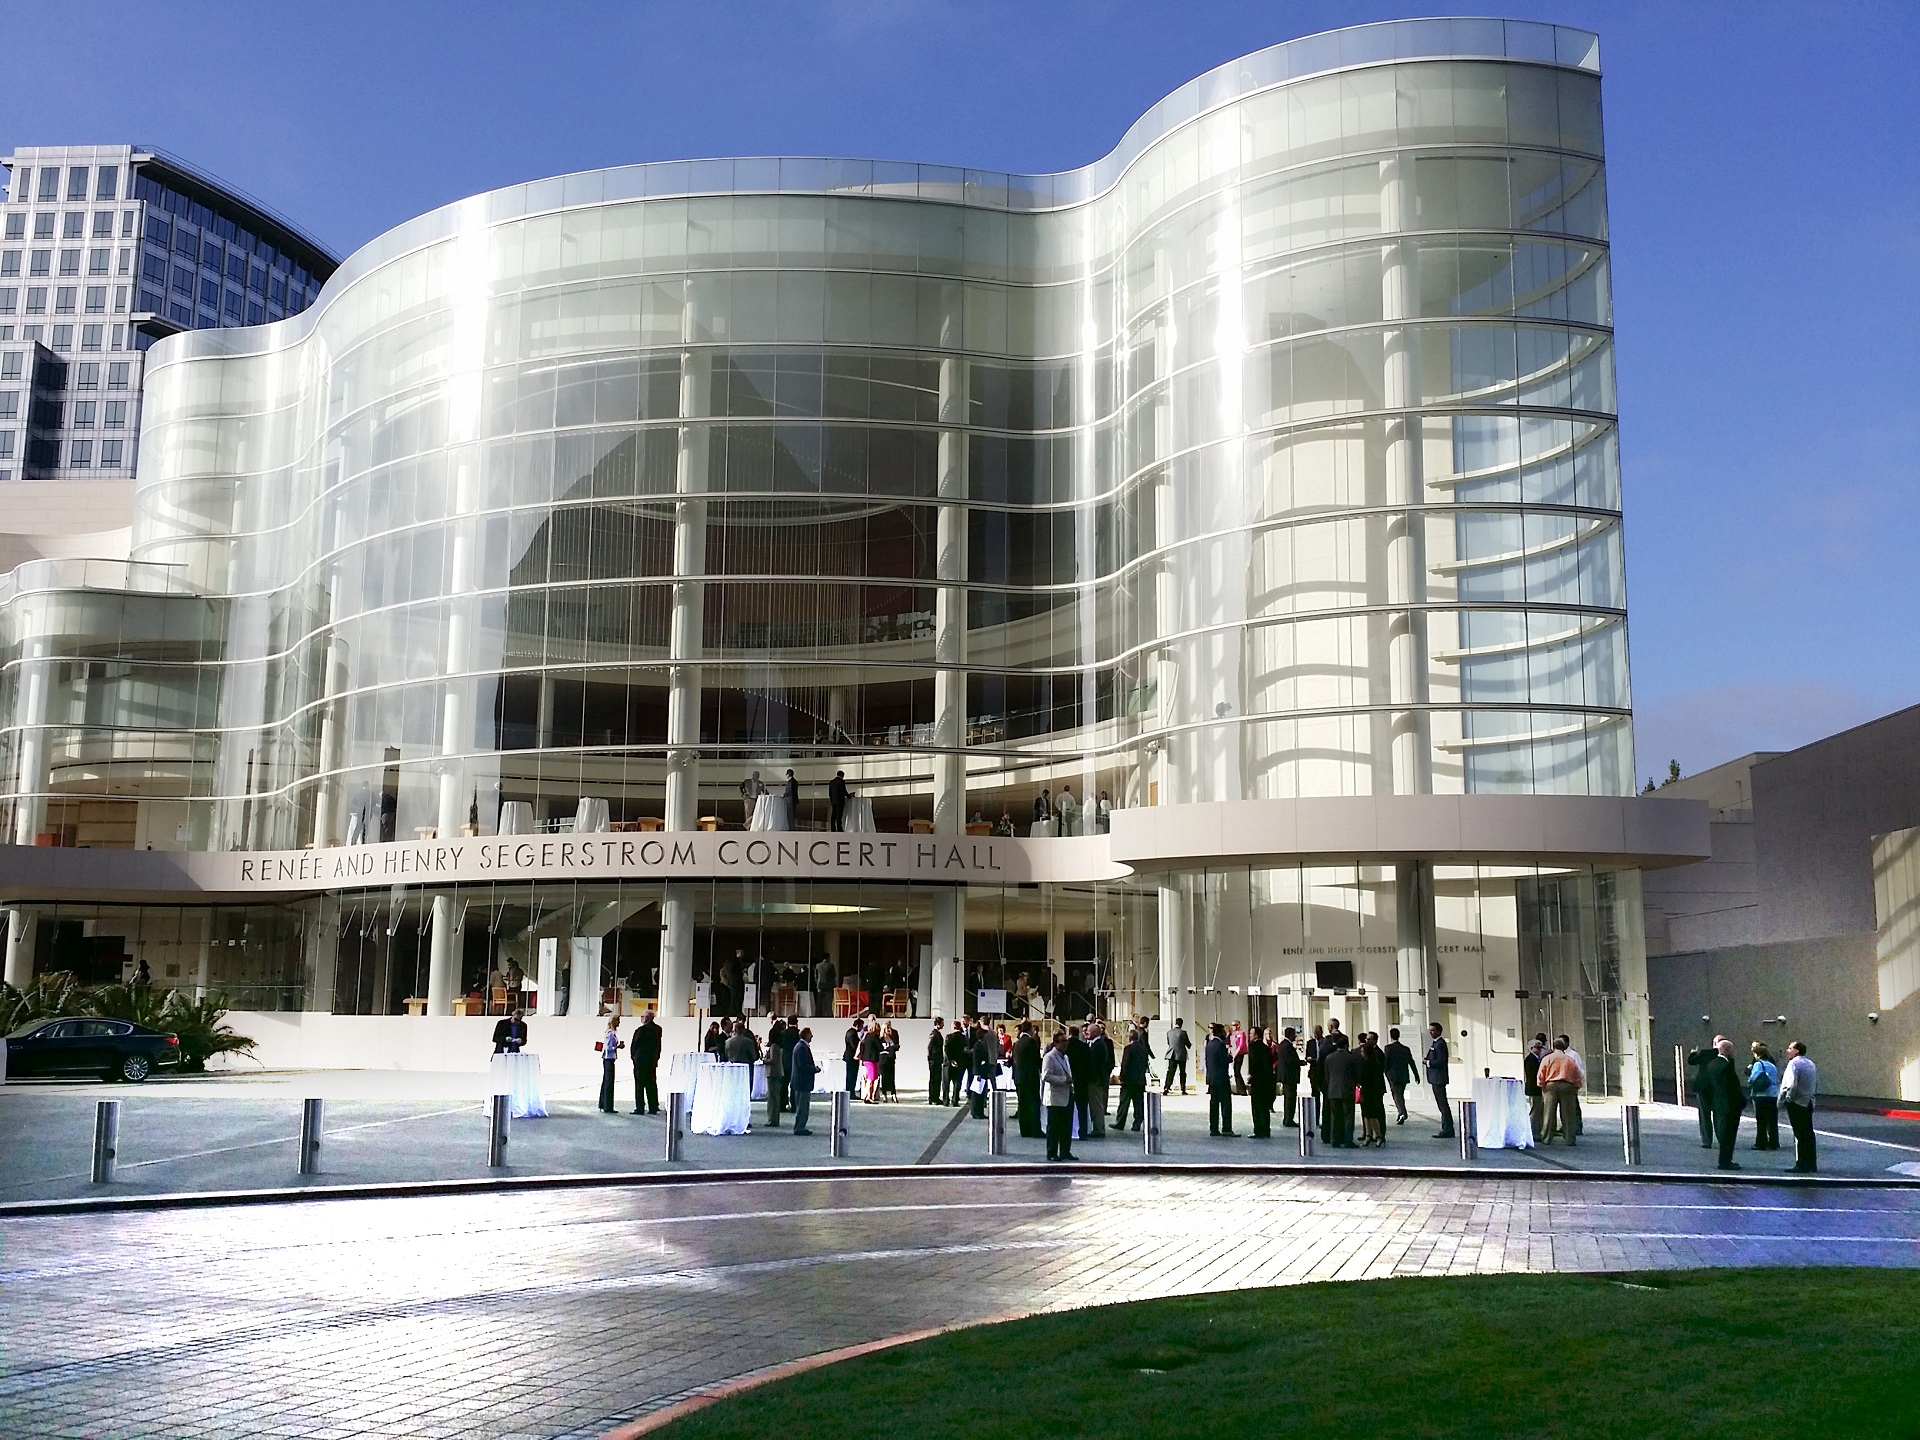 Renee and Henry Segerstrom Concert Hall